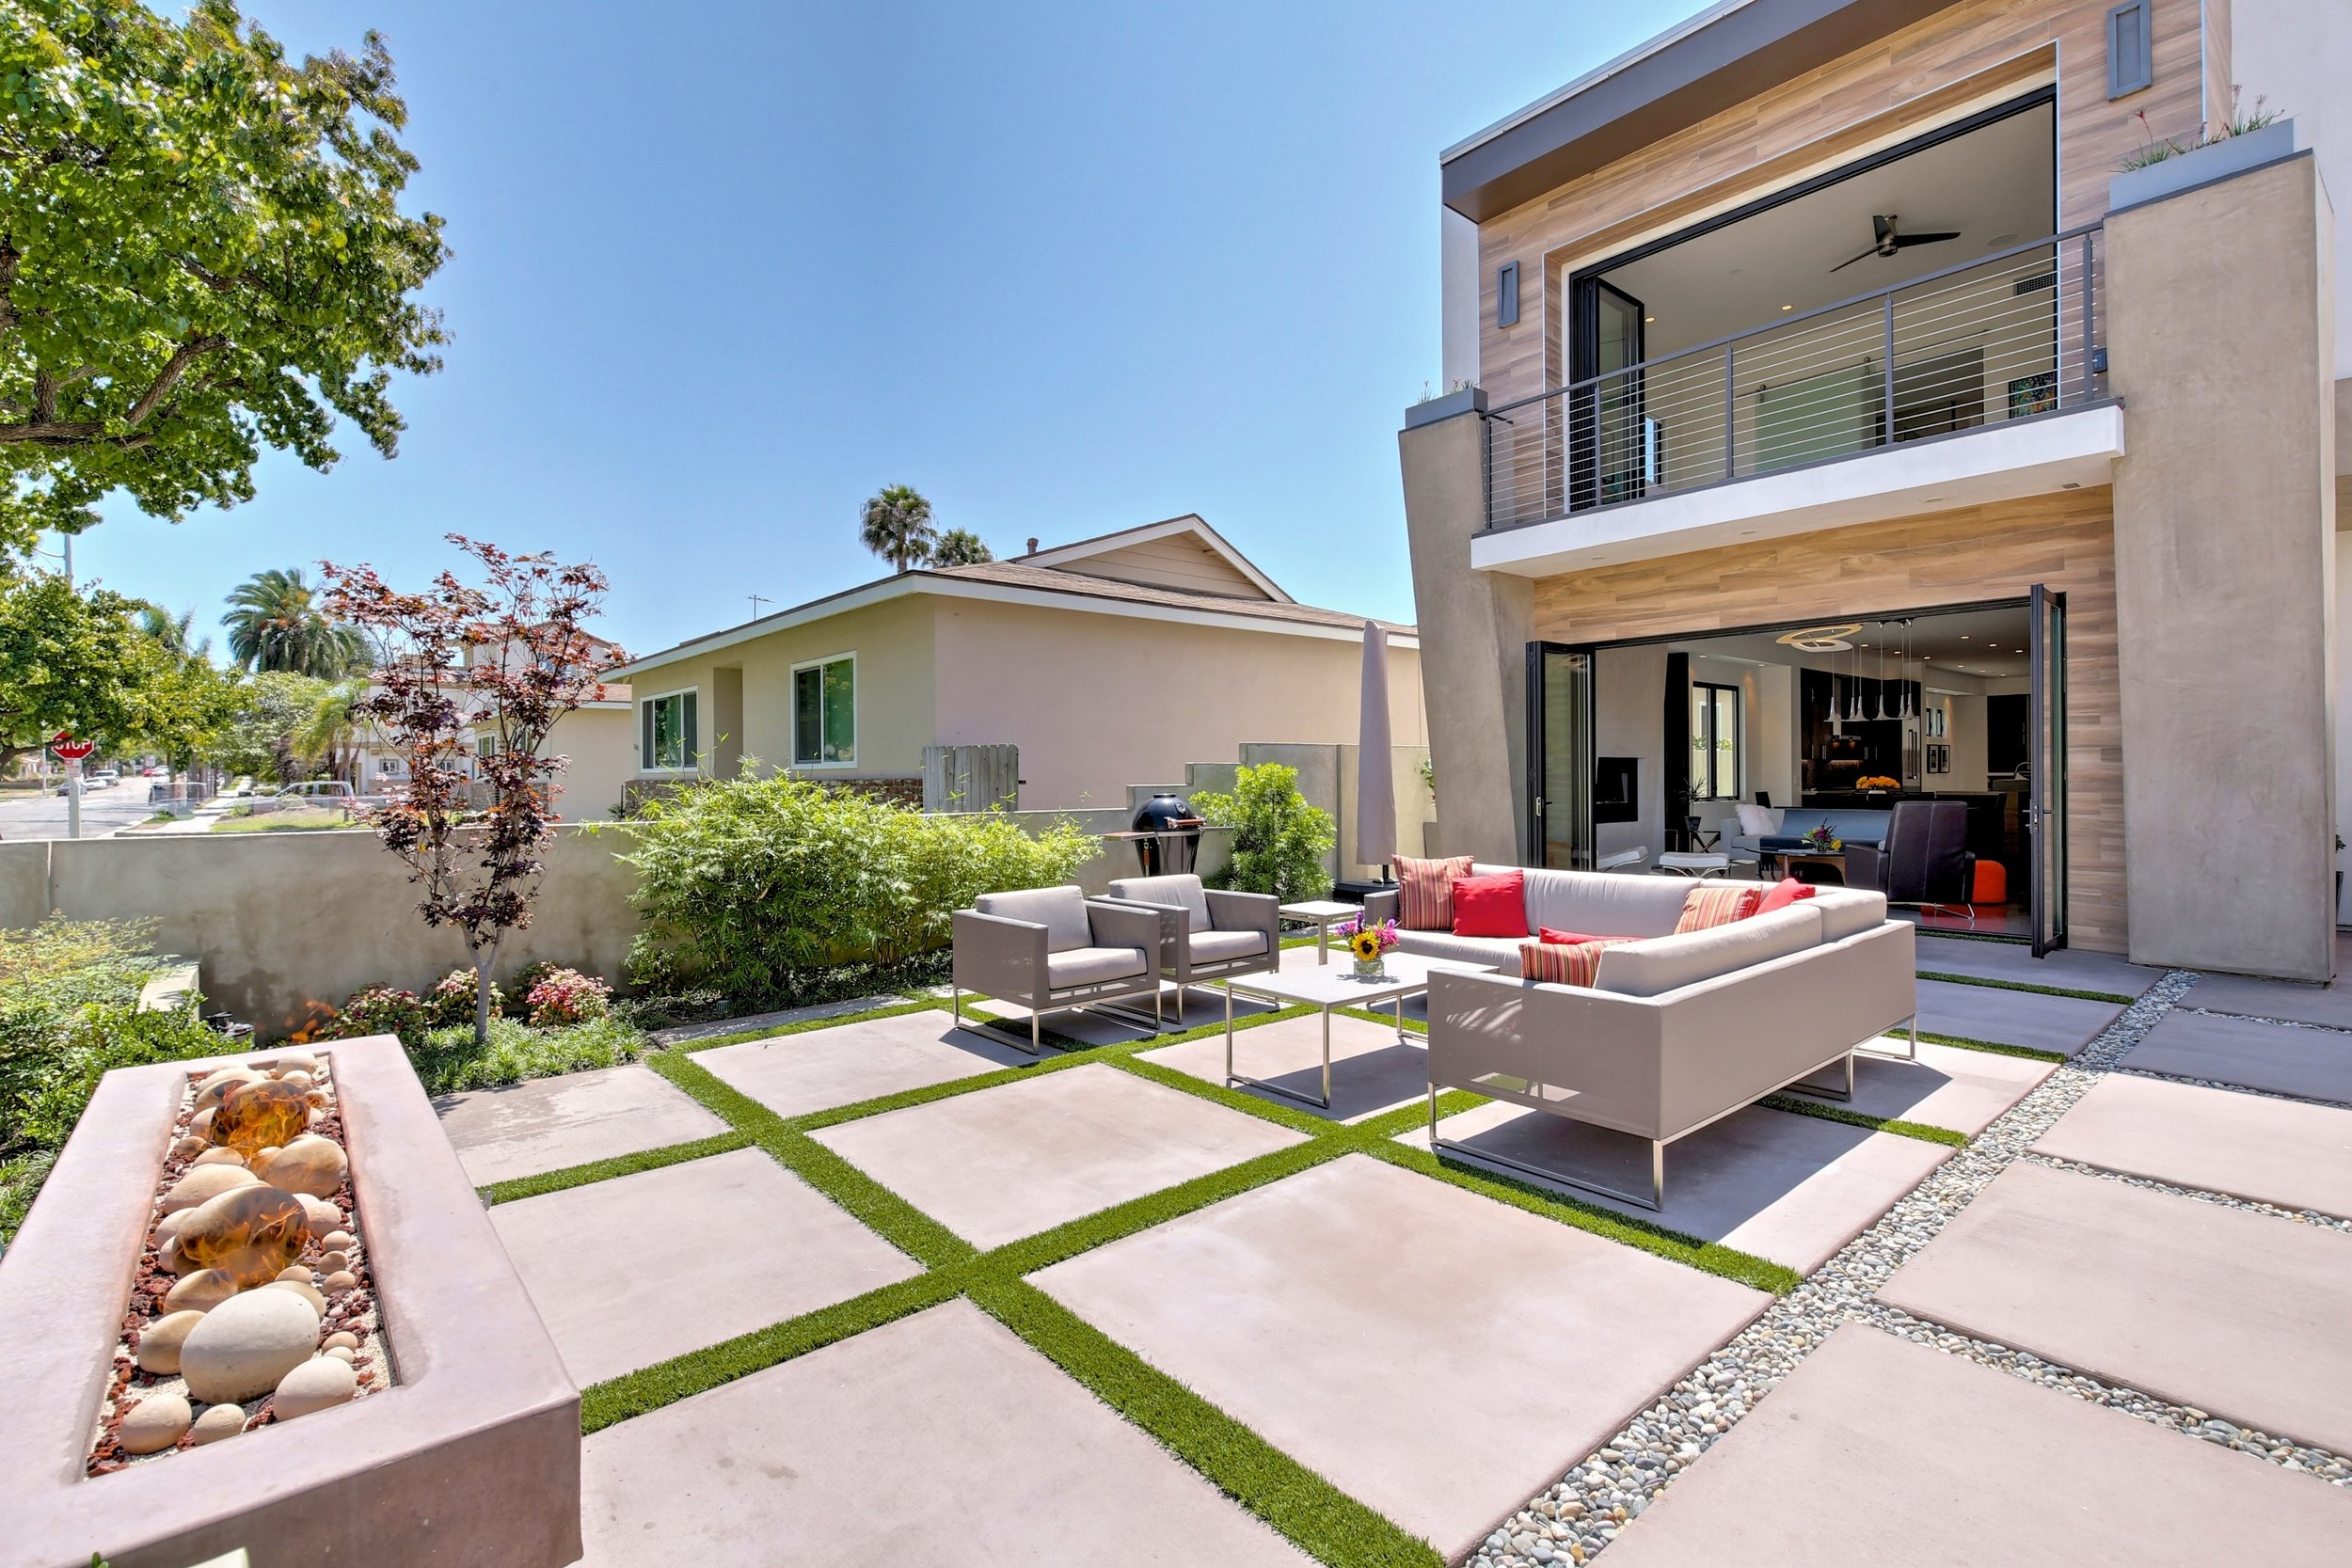 Modern Masterpiece - SOLD BY MARIA X for $1,630,0001109 California St. Huntington Beach